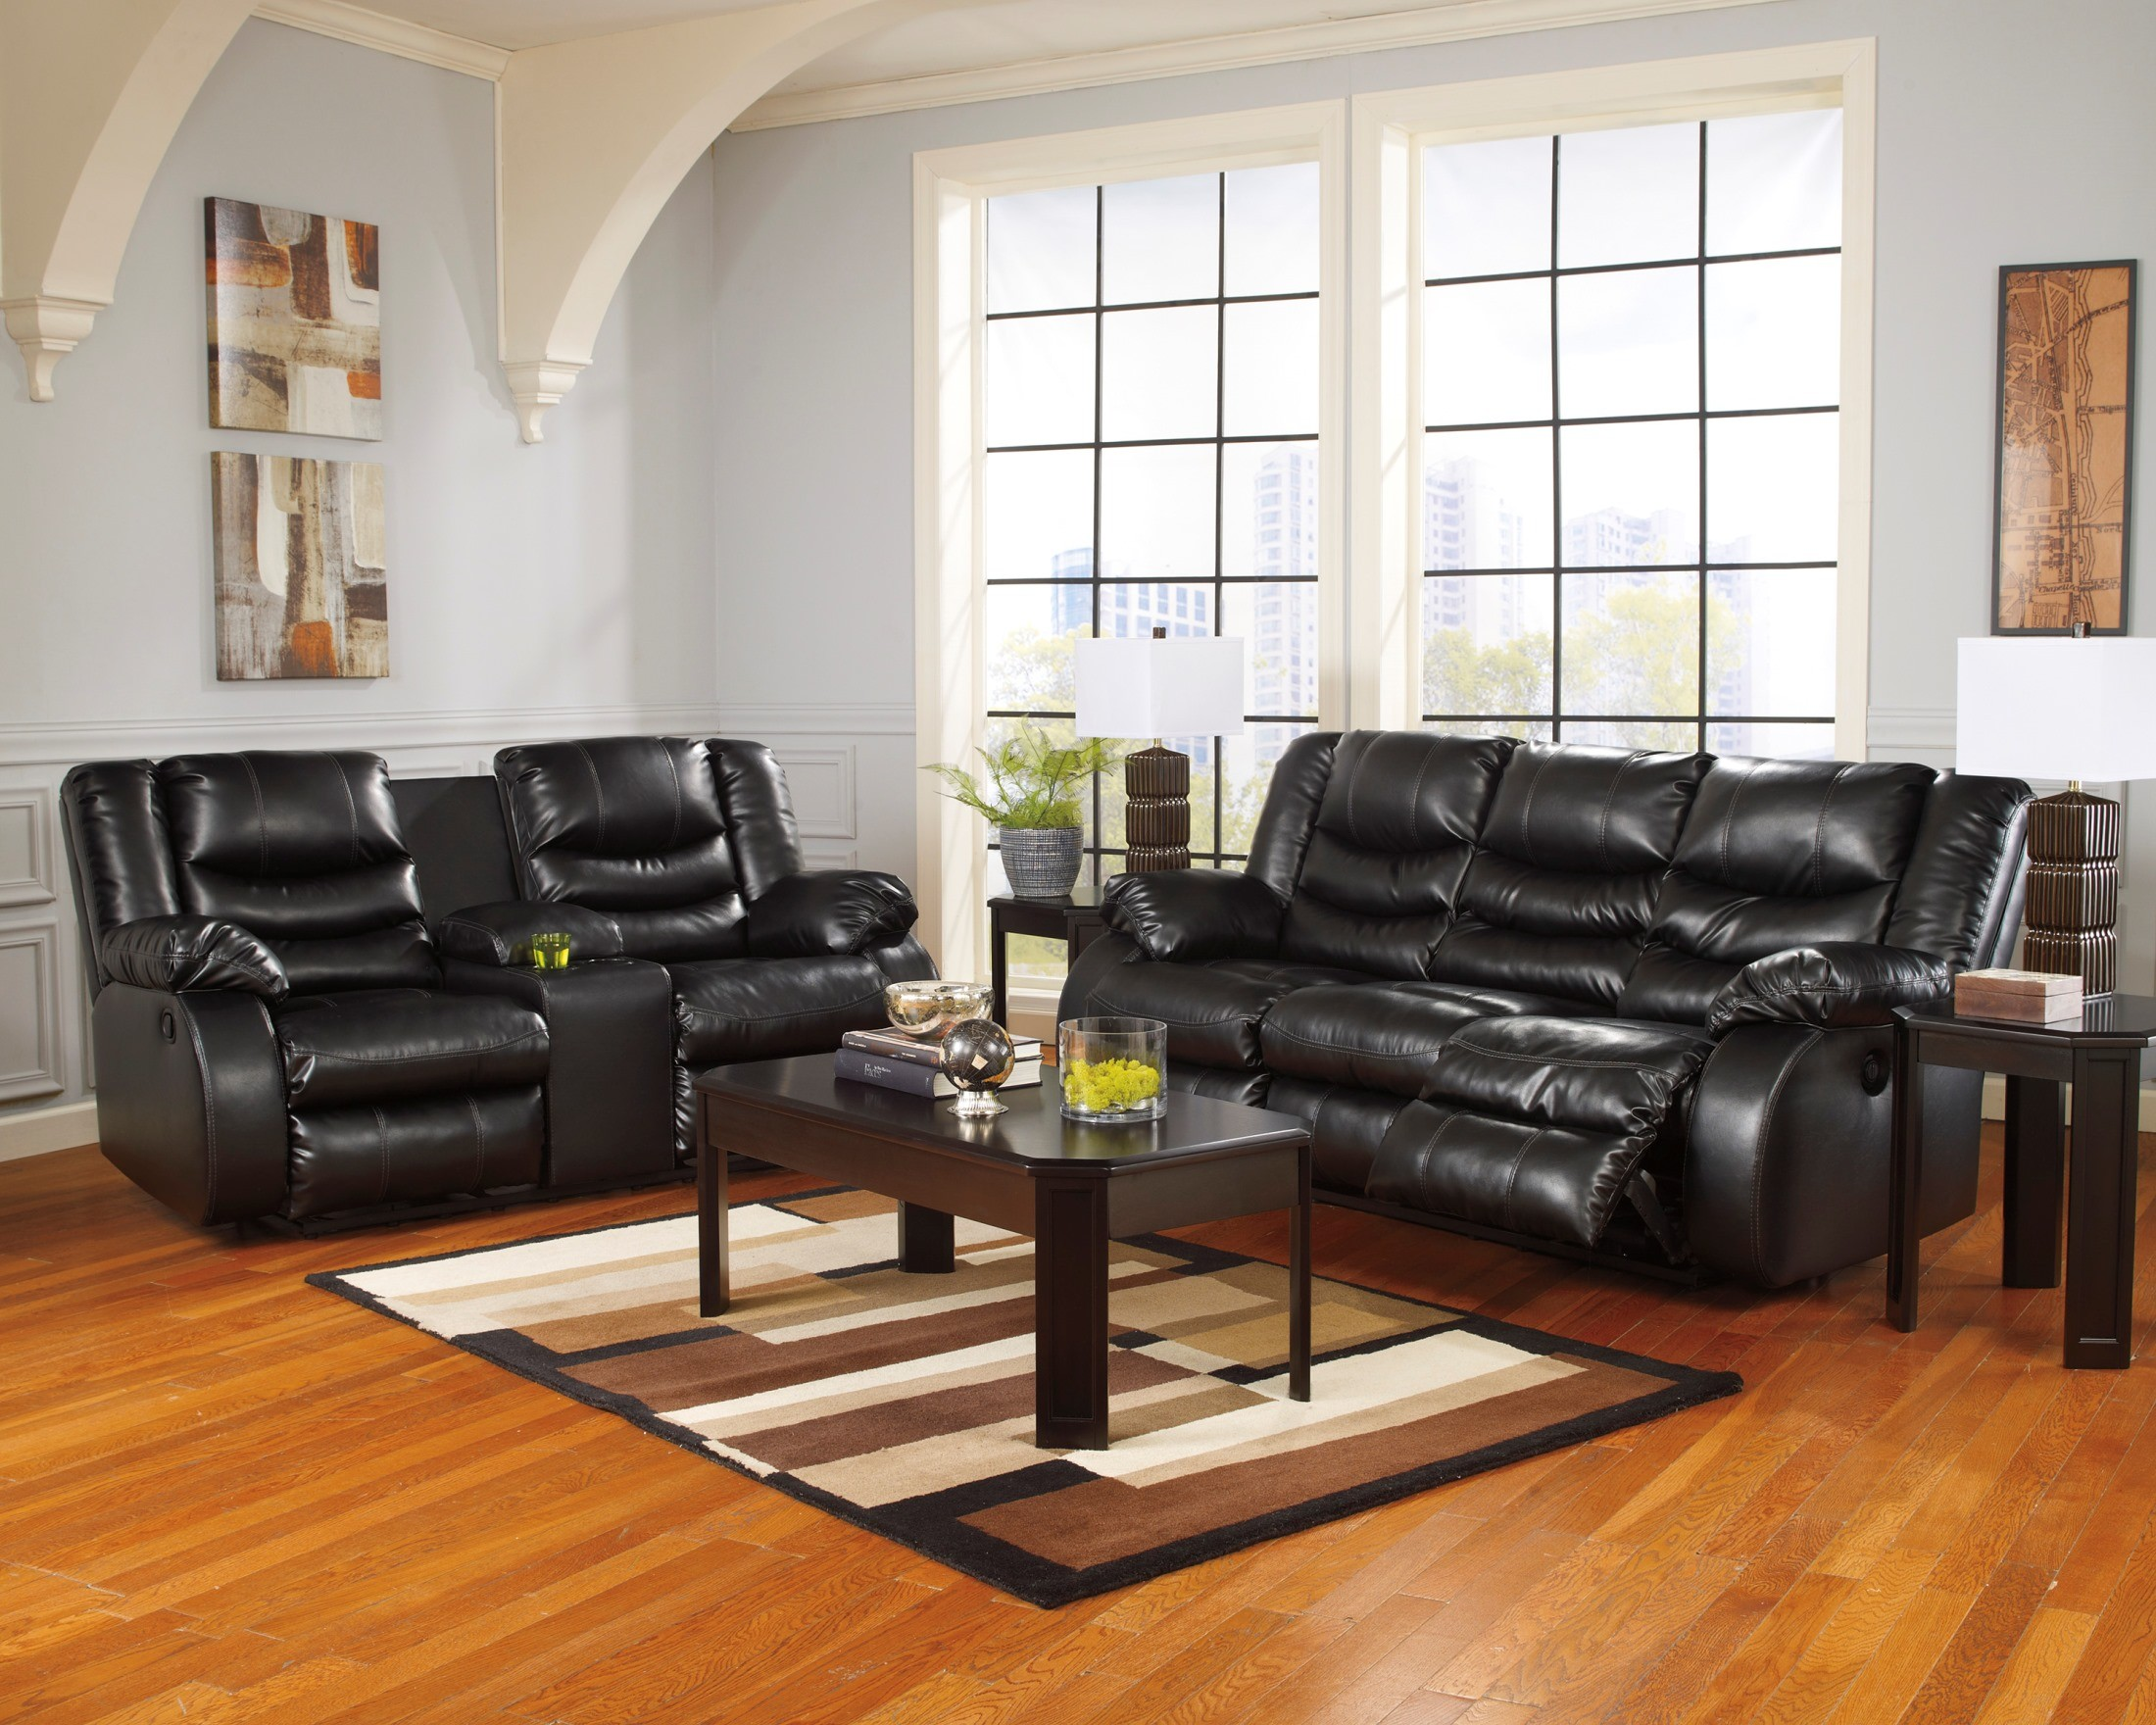 LineBacker DuraBlend Black Reclining Sofa from Ashley